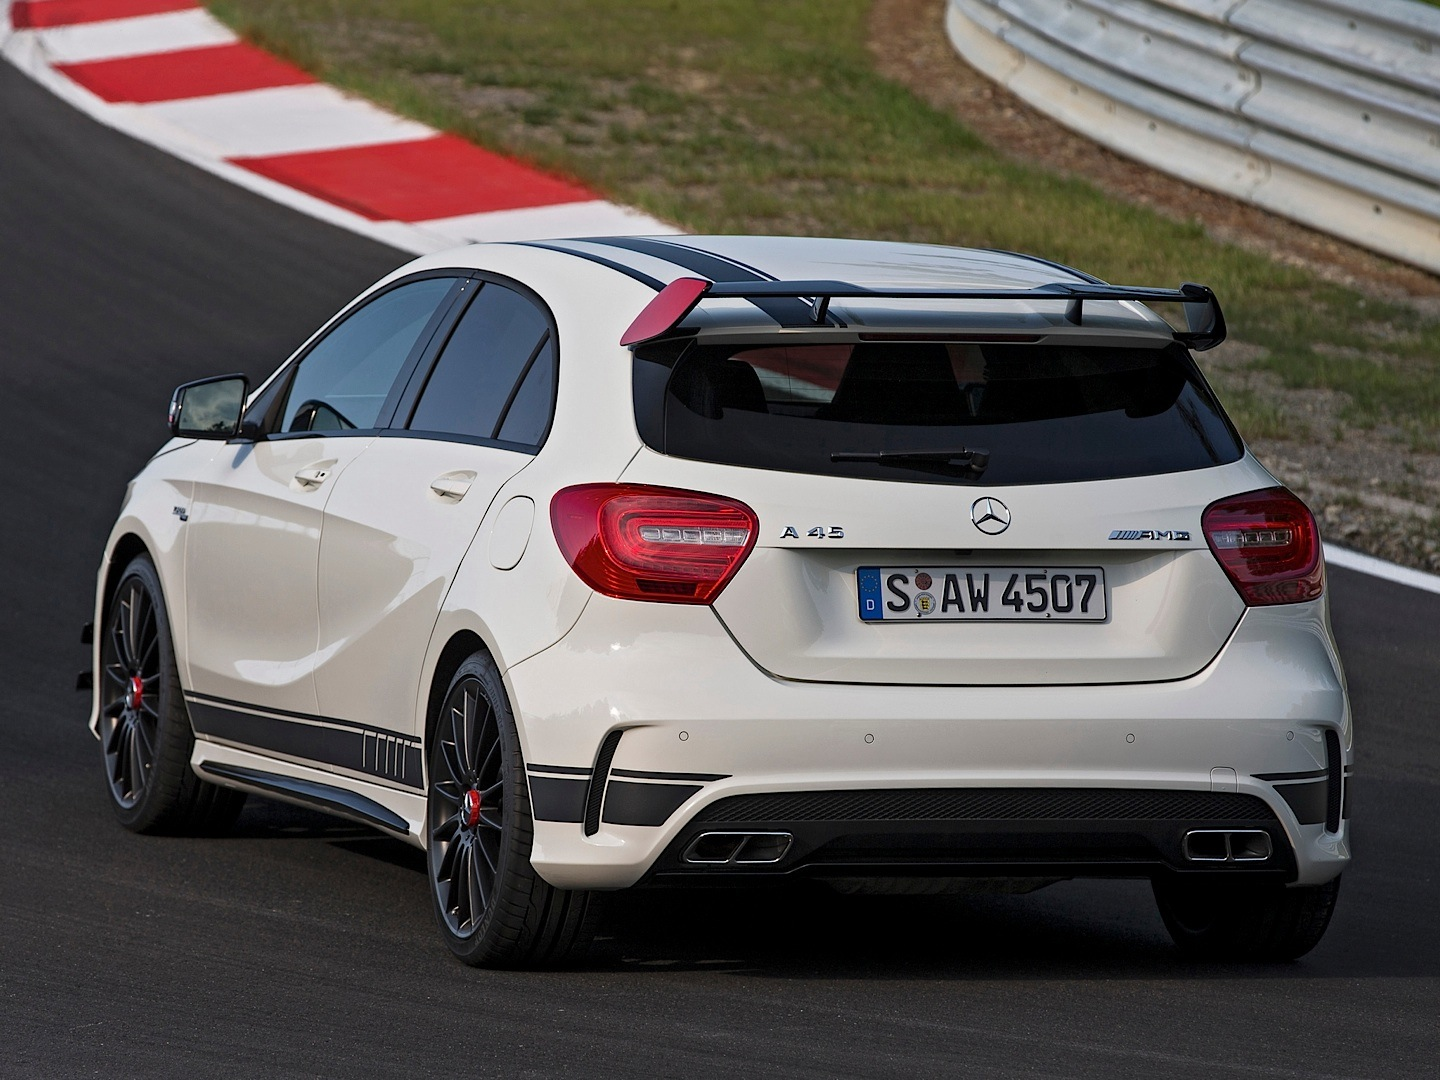 Audi Vs Mercedes >> Mercedes-Benz A 45 AMG Gets Priced in Malaysia - autoevolution